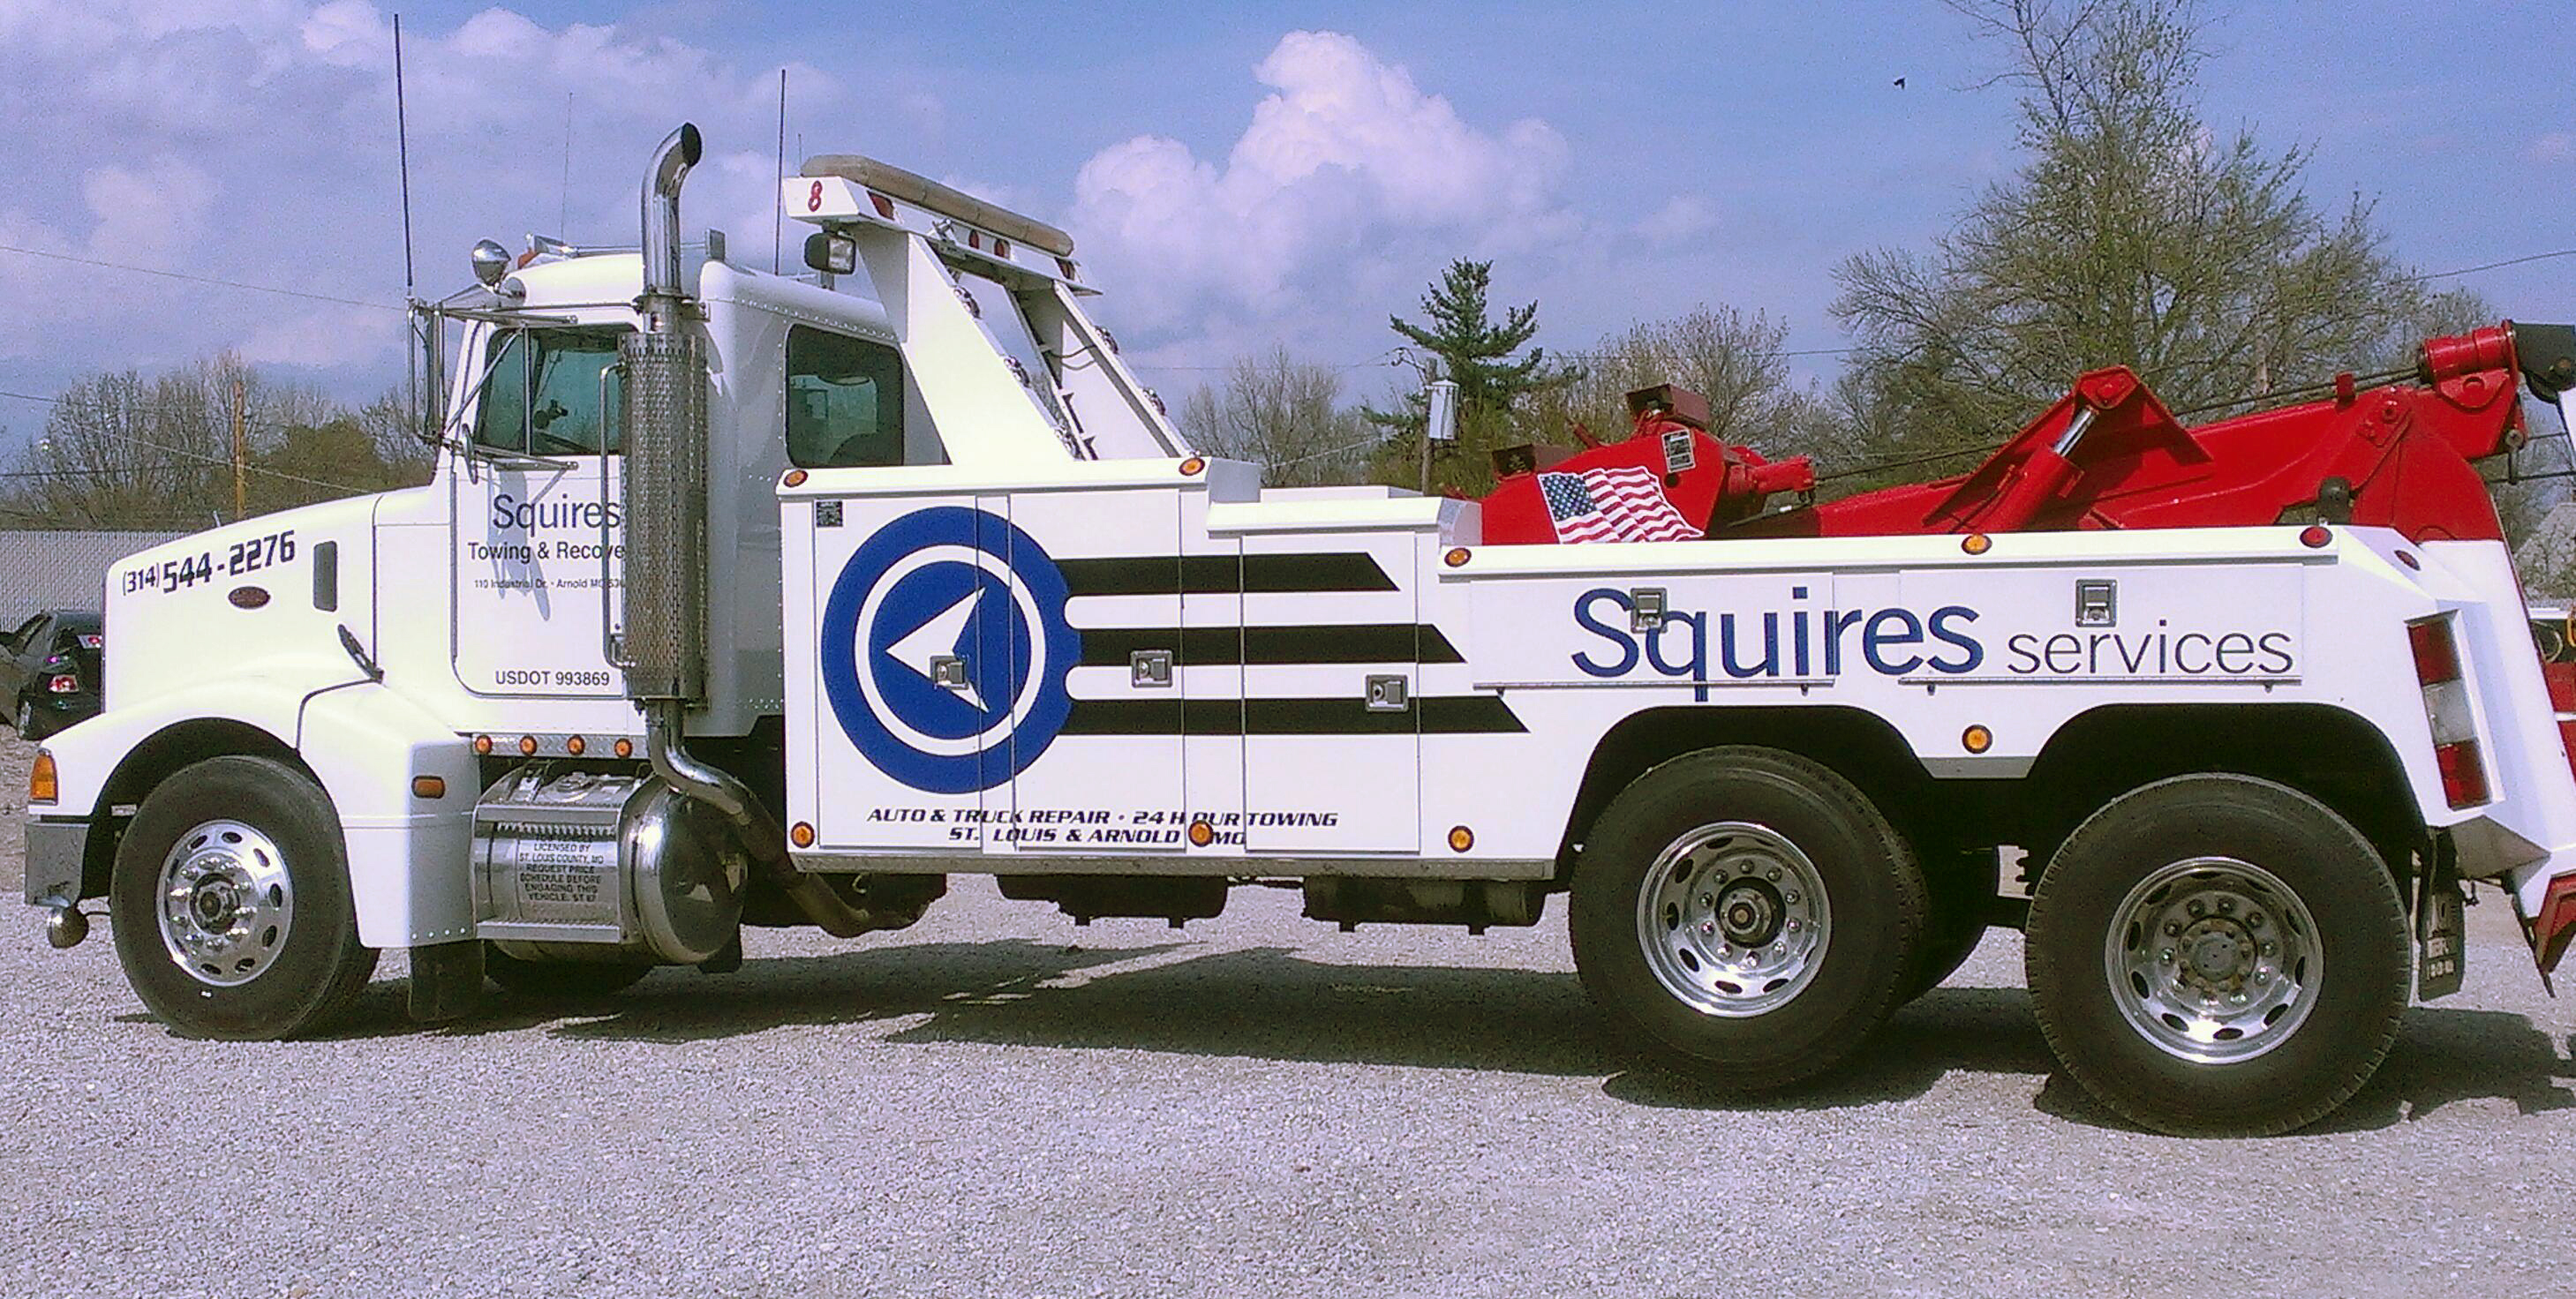 Commercial Truck Values >> Reliable Auto Repair and Towing St. Louis - Squires Services